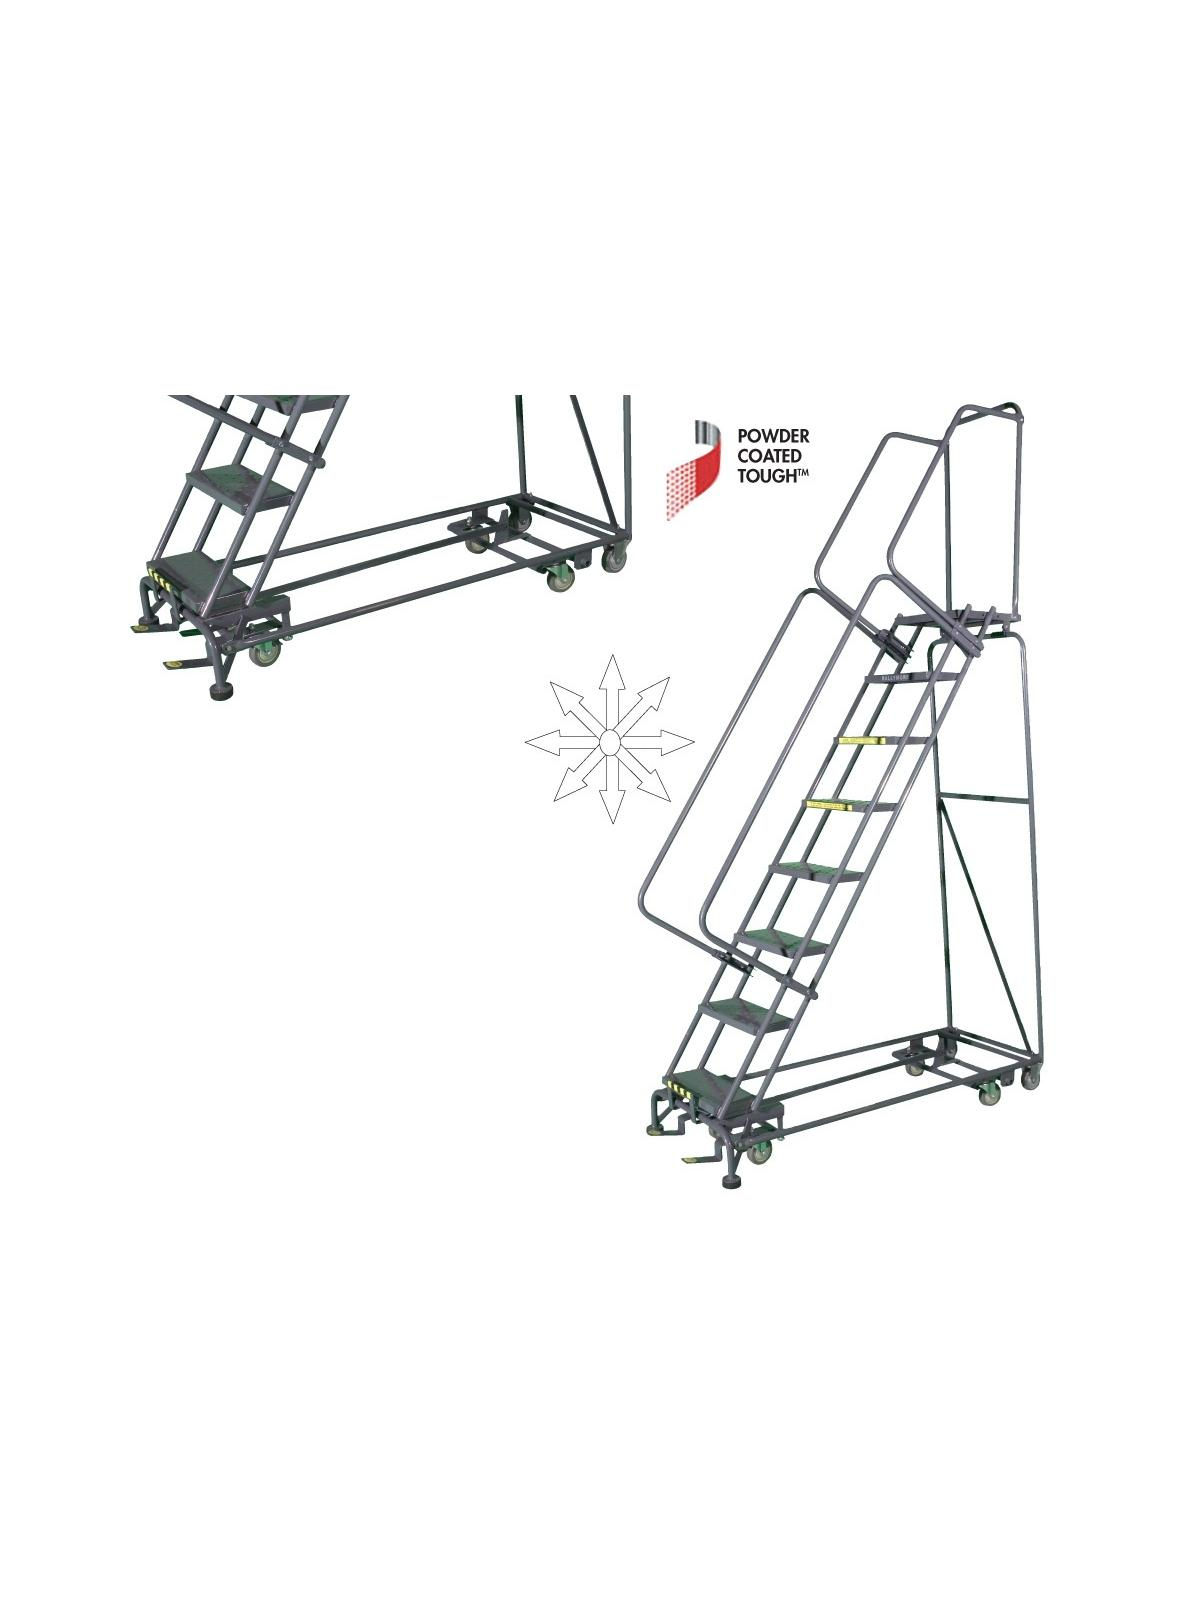 Pivoting All Direction Ladders At Nationwide Industrial